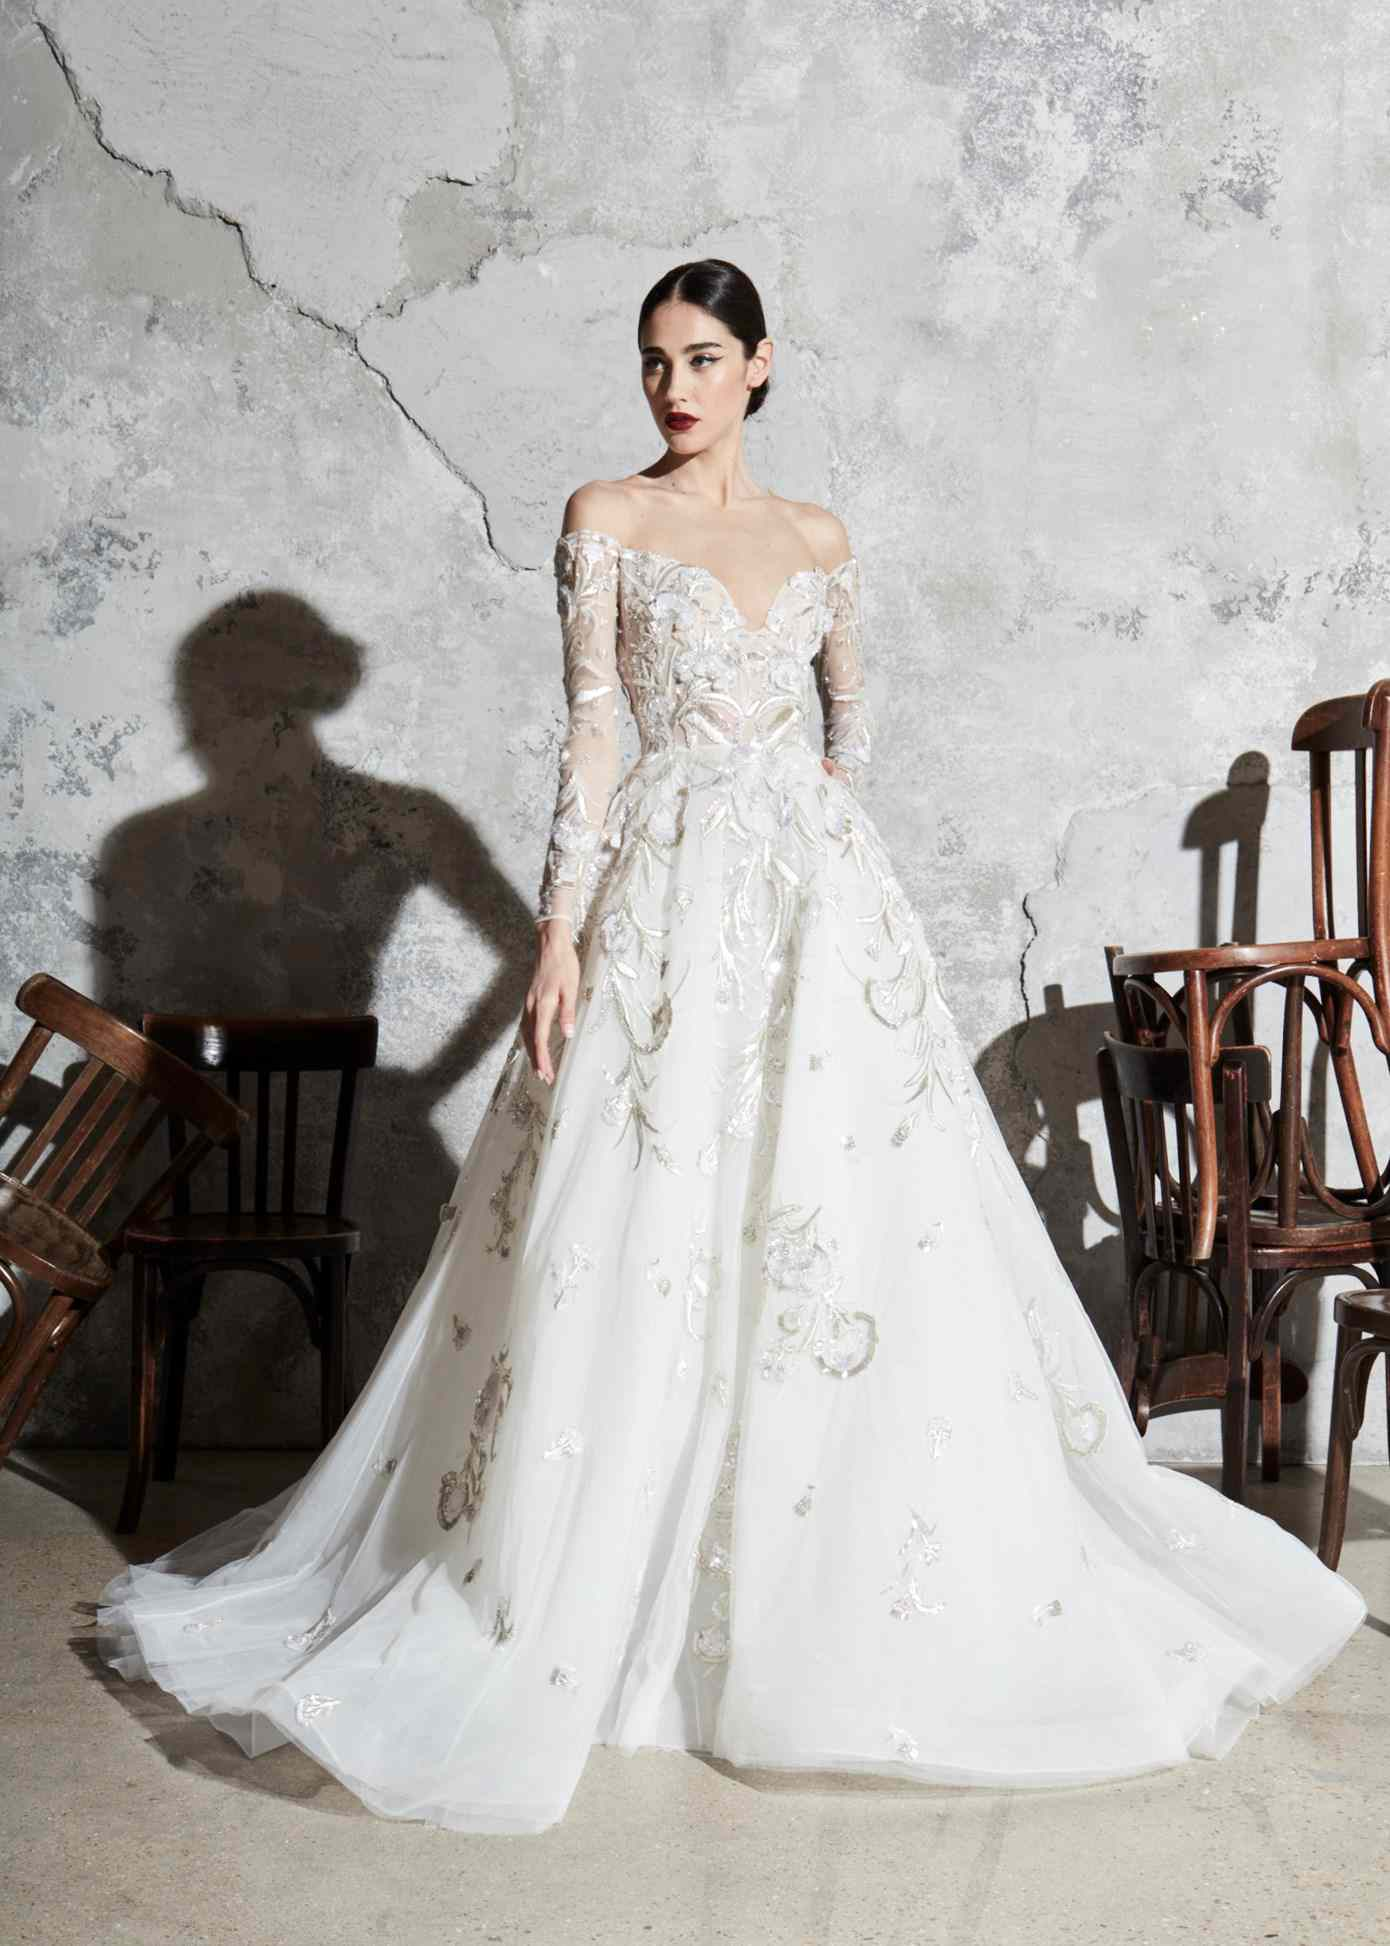 Model in off-the-shoulder long-sleeve ballgown with deep sweetheart neckline and silver and gold embroidery